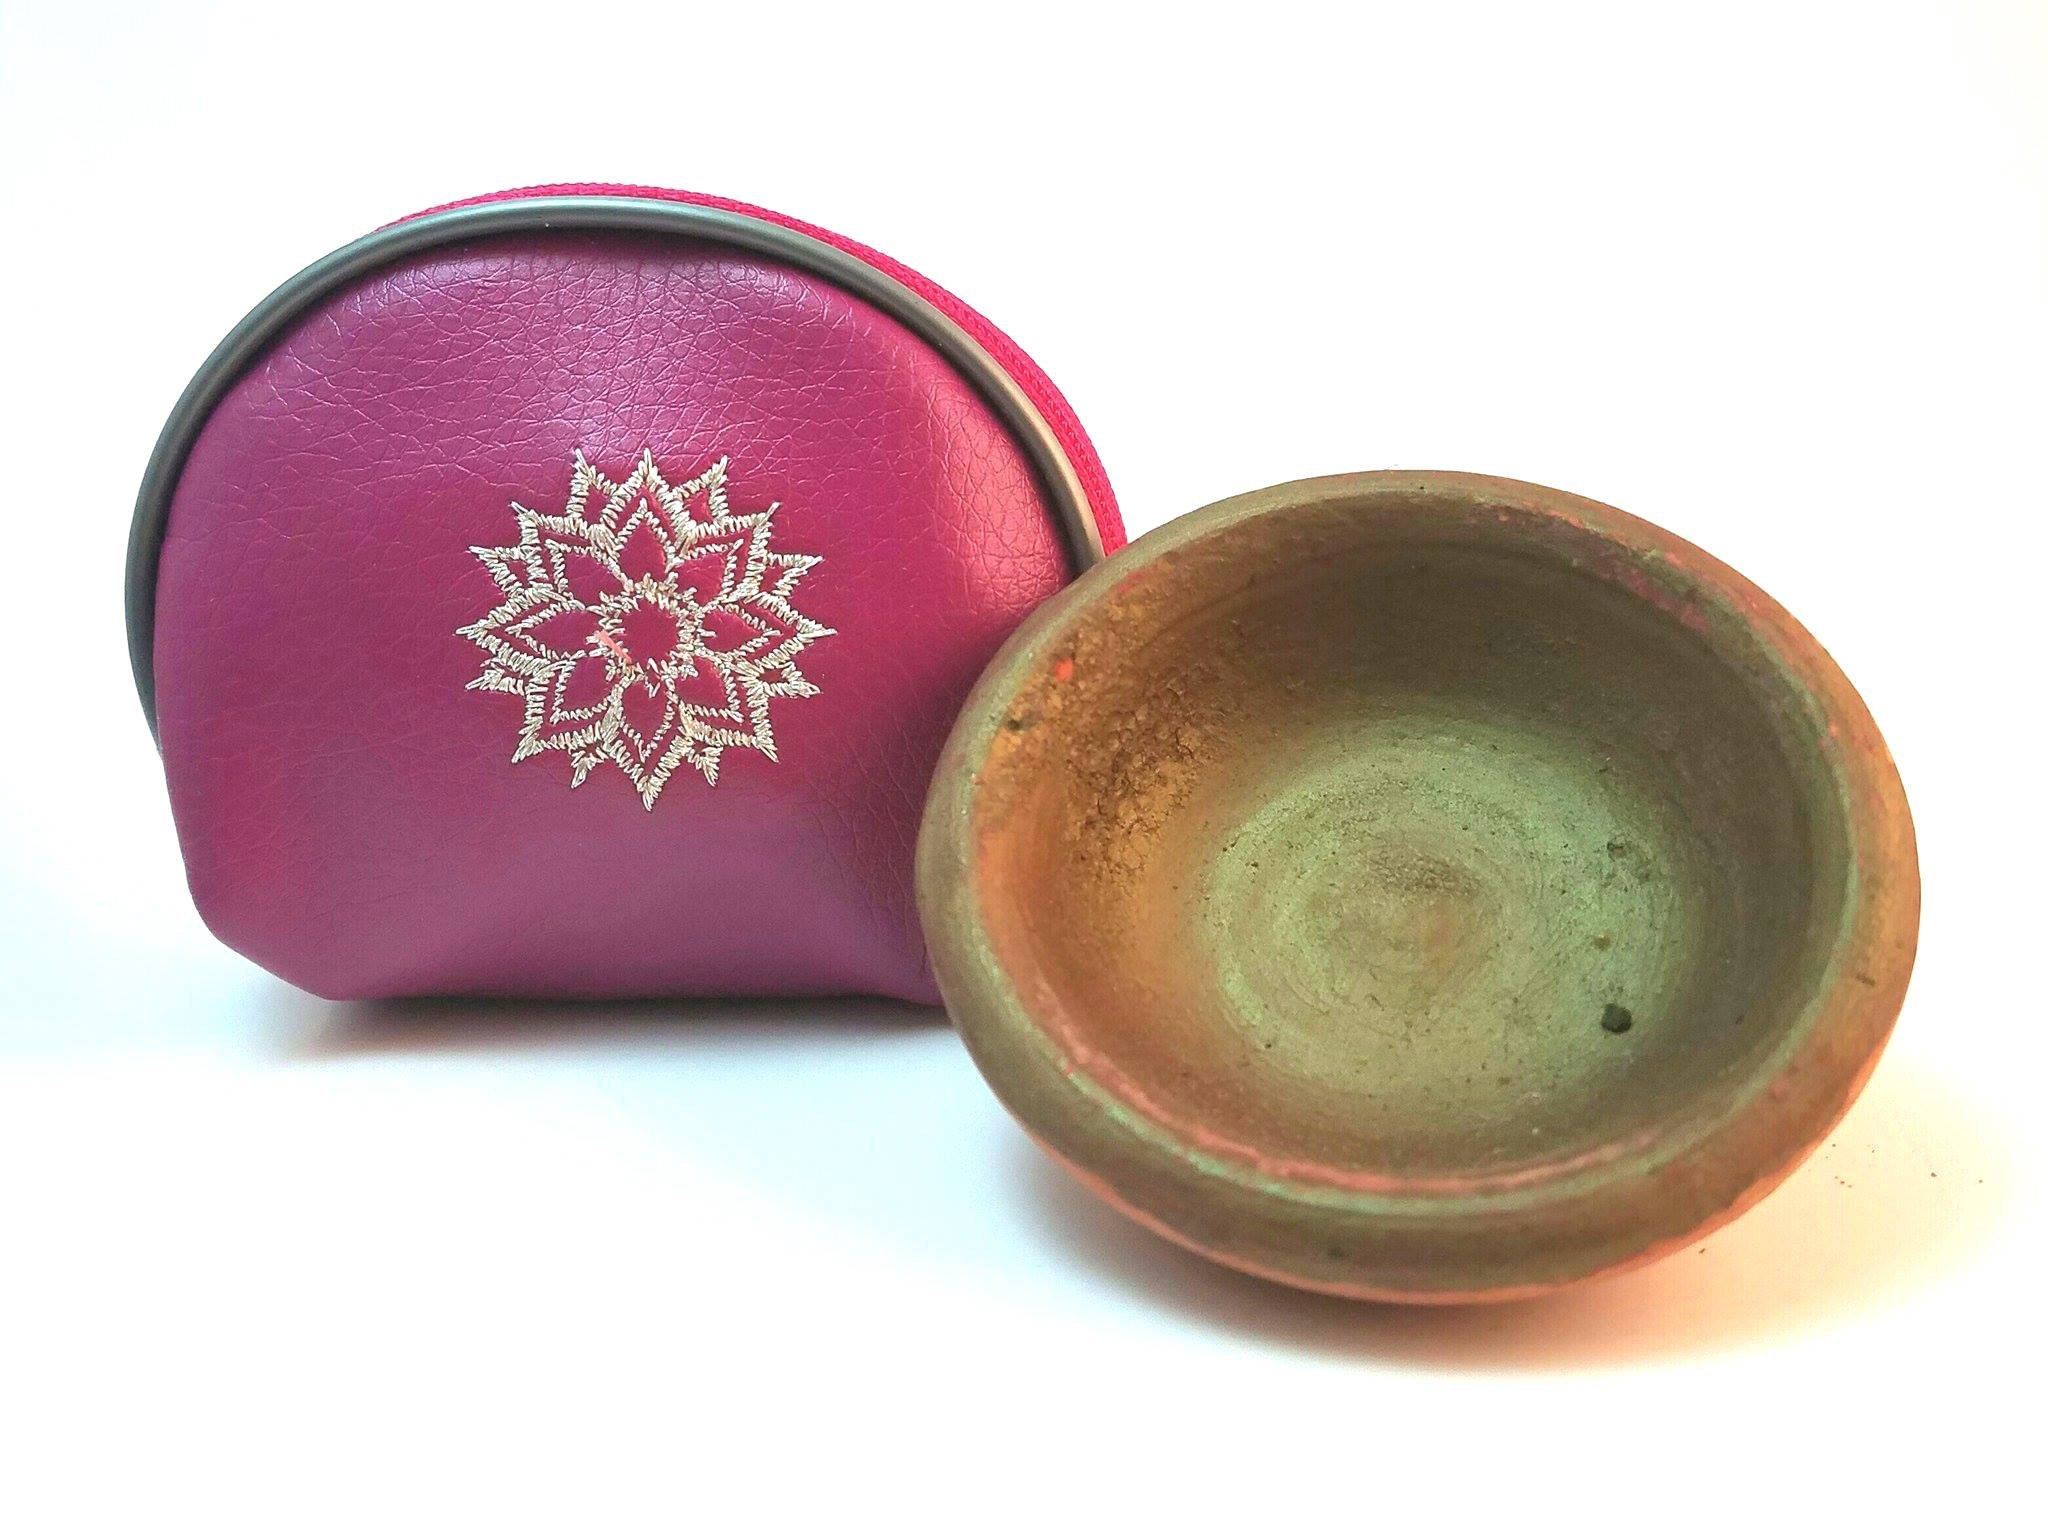 Moroccan Clay Pot Lip and Cheek Stain – Totally - Organic with designer Brush applicator. Includes Handmade Artisan Key chain Bag. (Rose Keychain Bag)